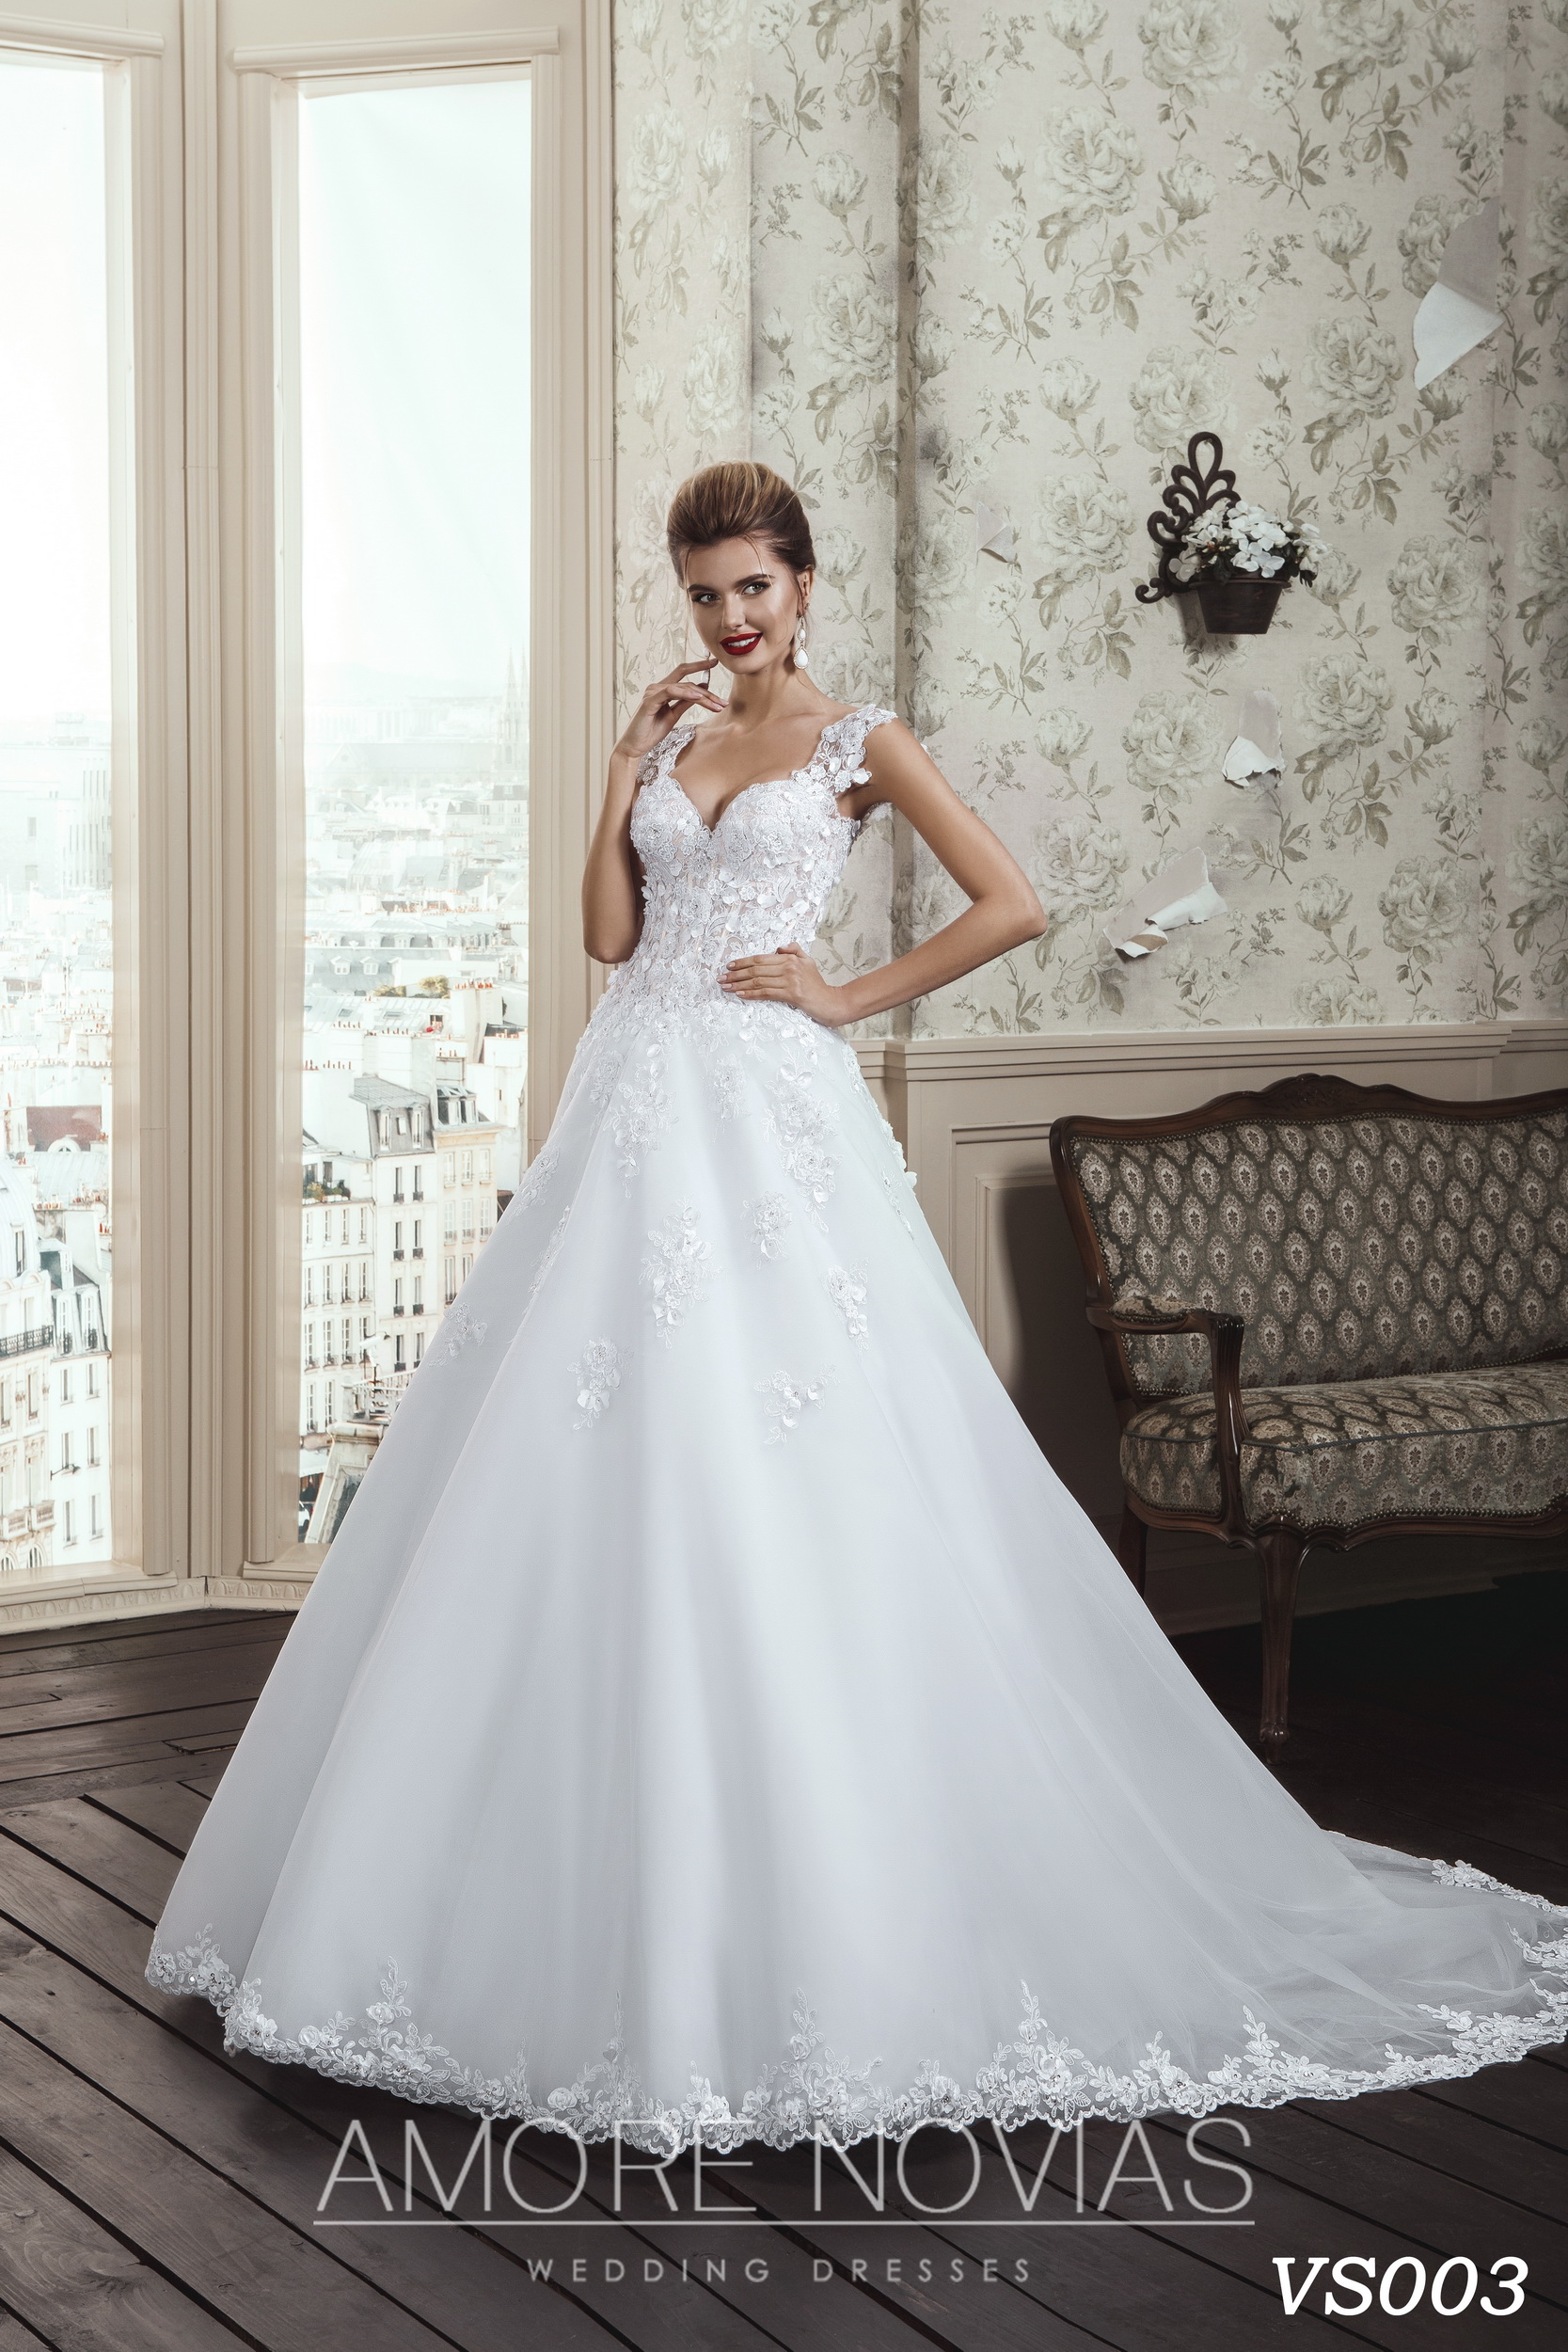 http://amore-novias.com/images/stories/virtuemart/product/vs003.jpg